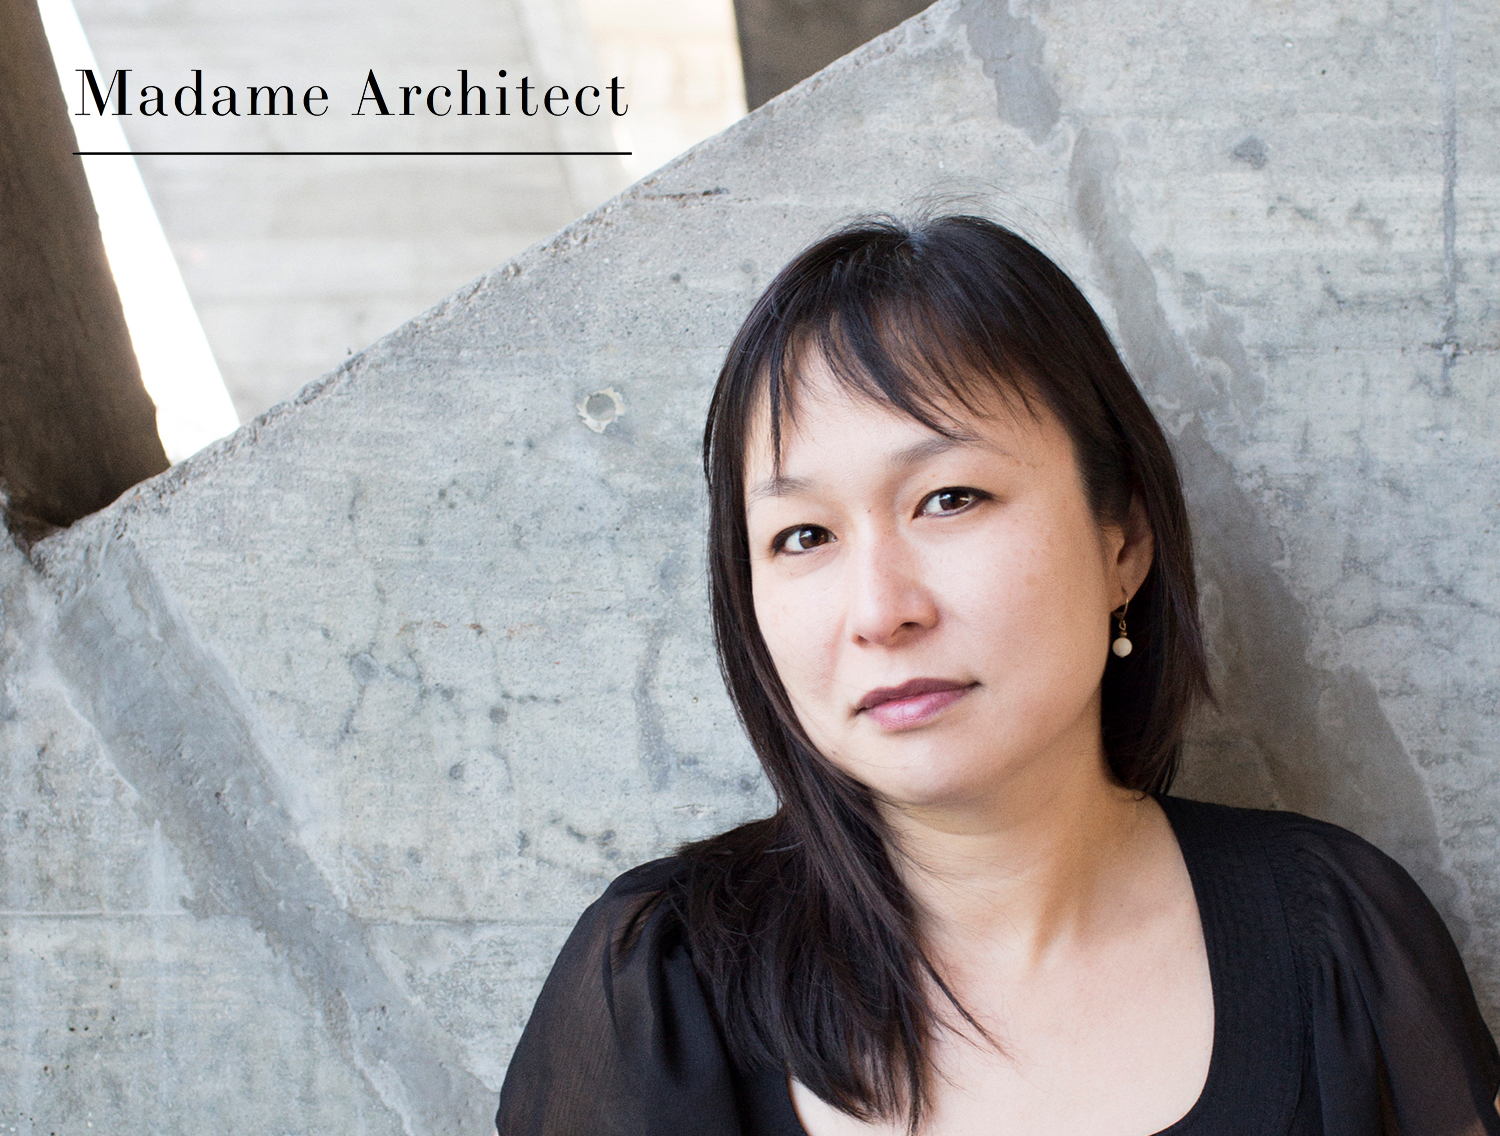 MADM - JUNE 2019 | Linna Choi sits down with Julia Gamolina of Madame Architect to reflect on working across continents and why it's important to take risks while young